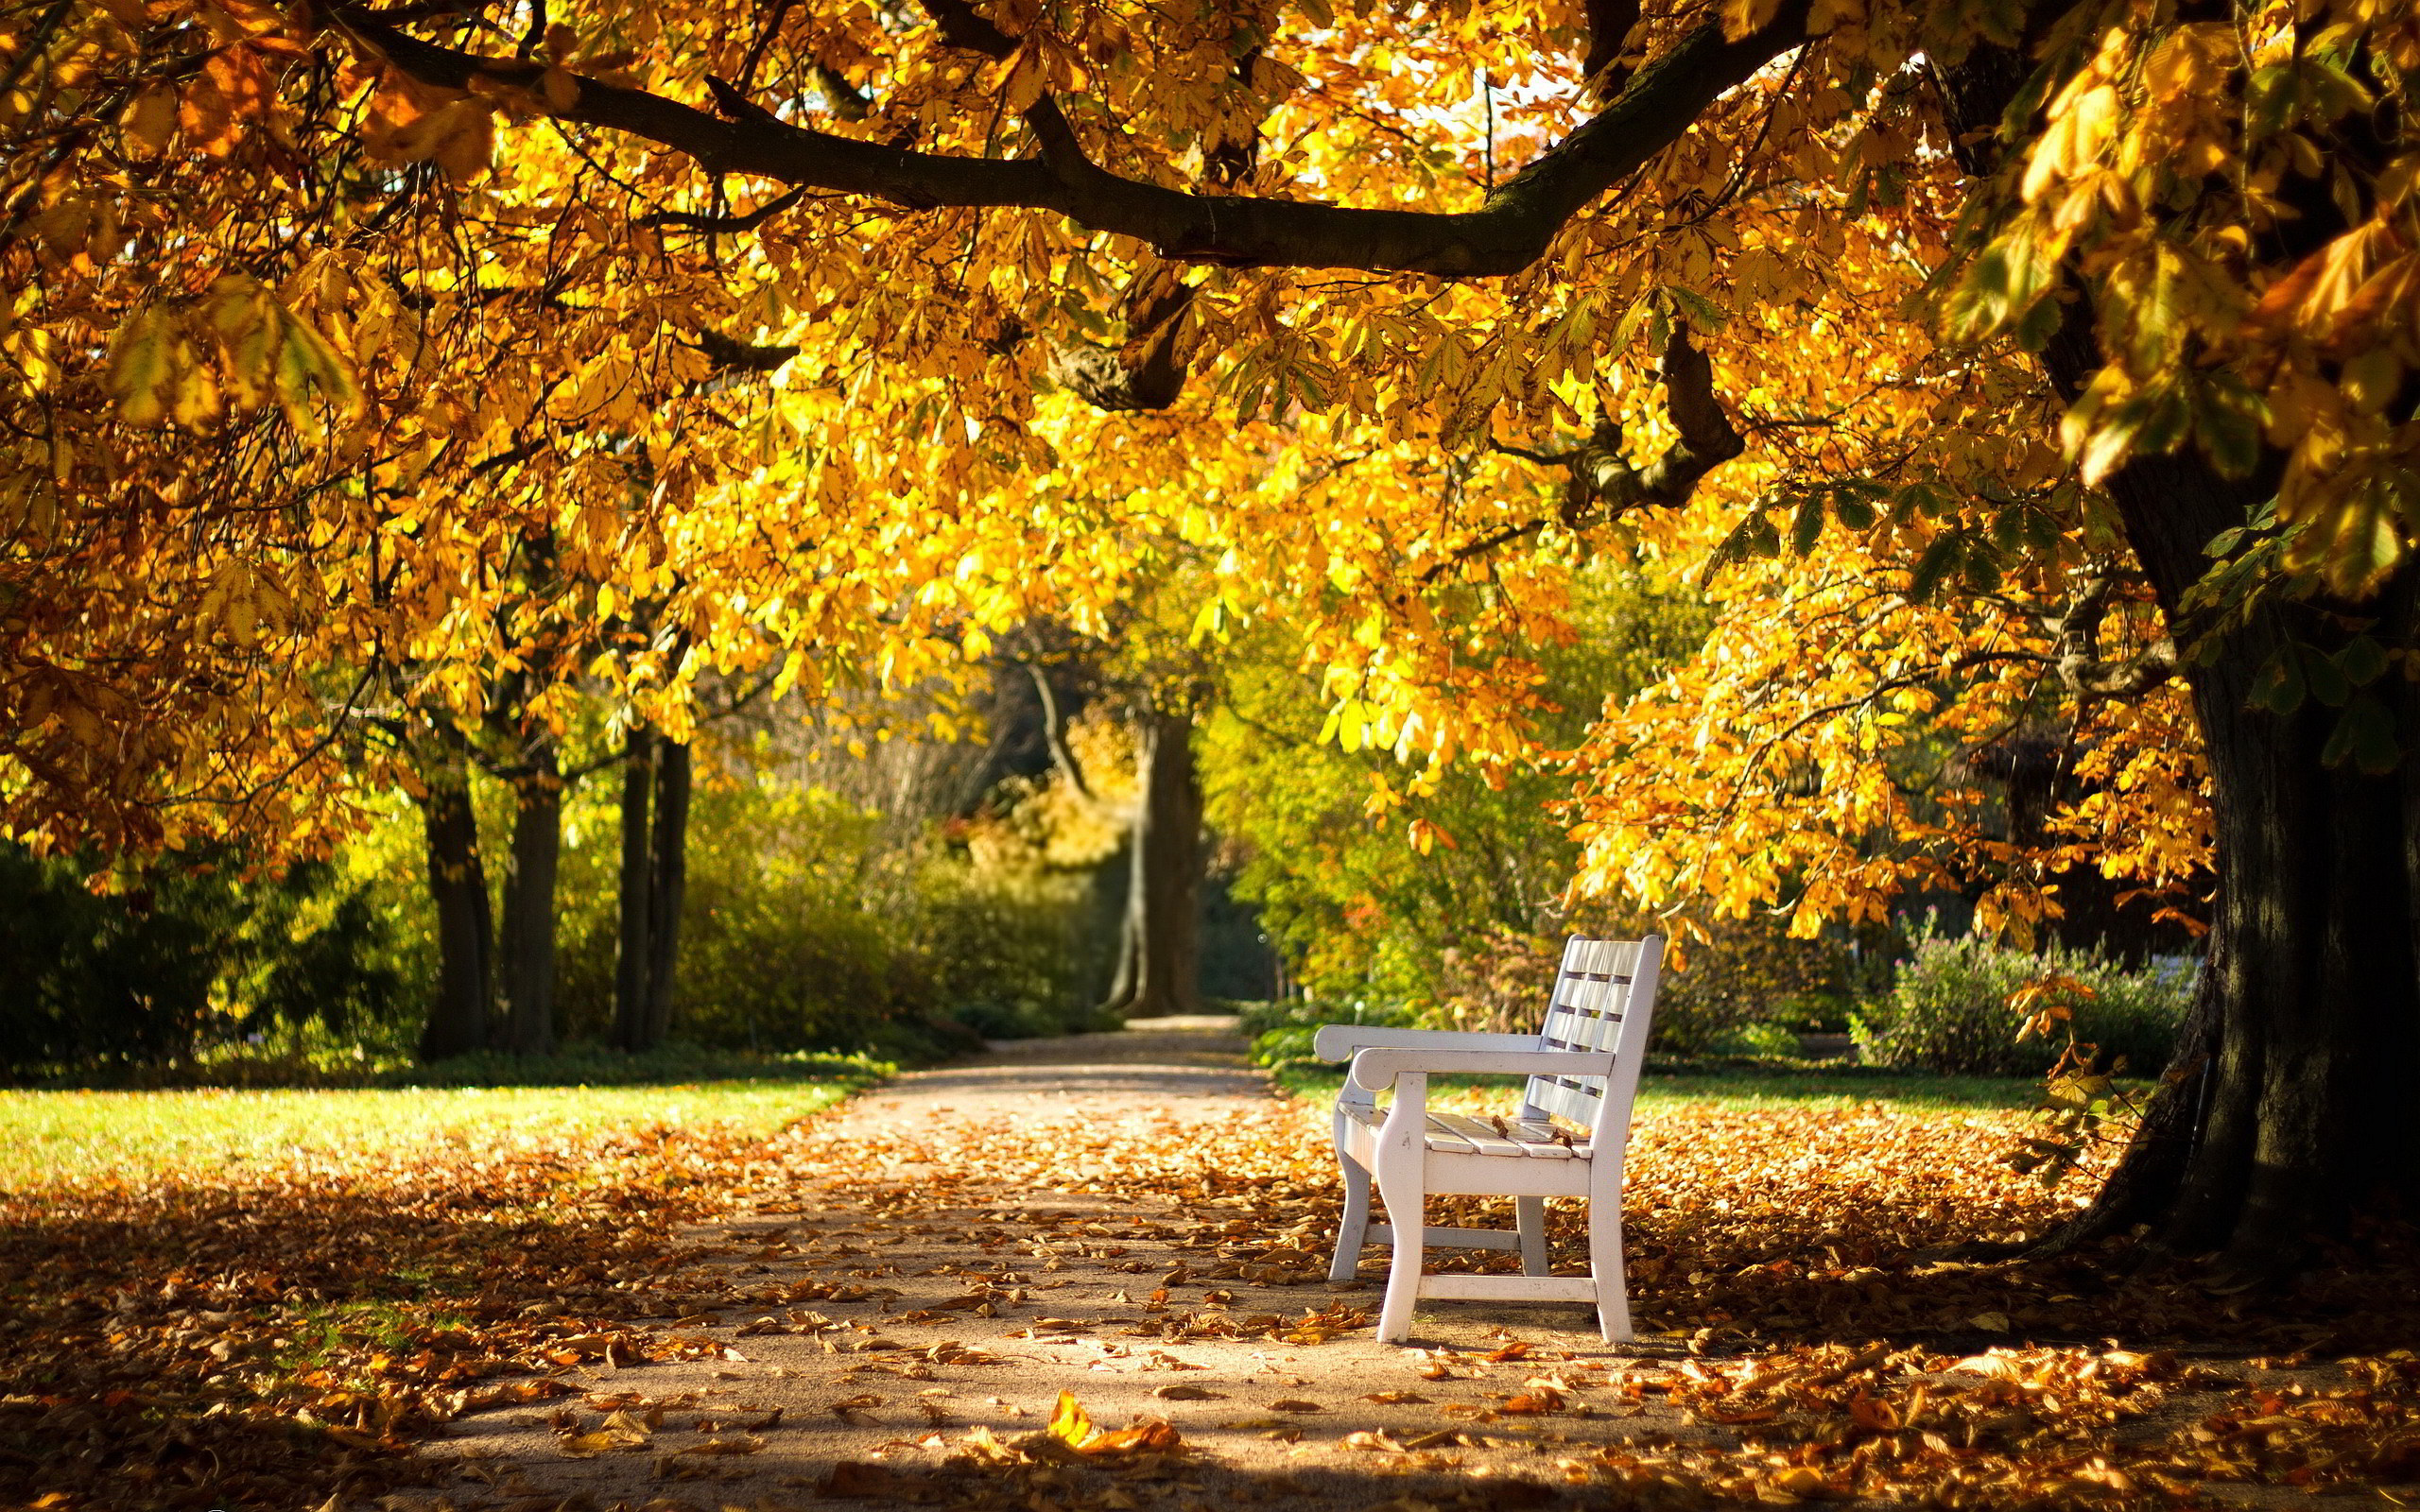 35 Excellent Hd Bench Wallpapers